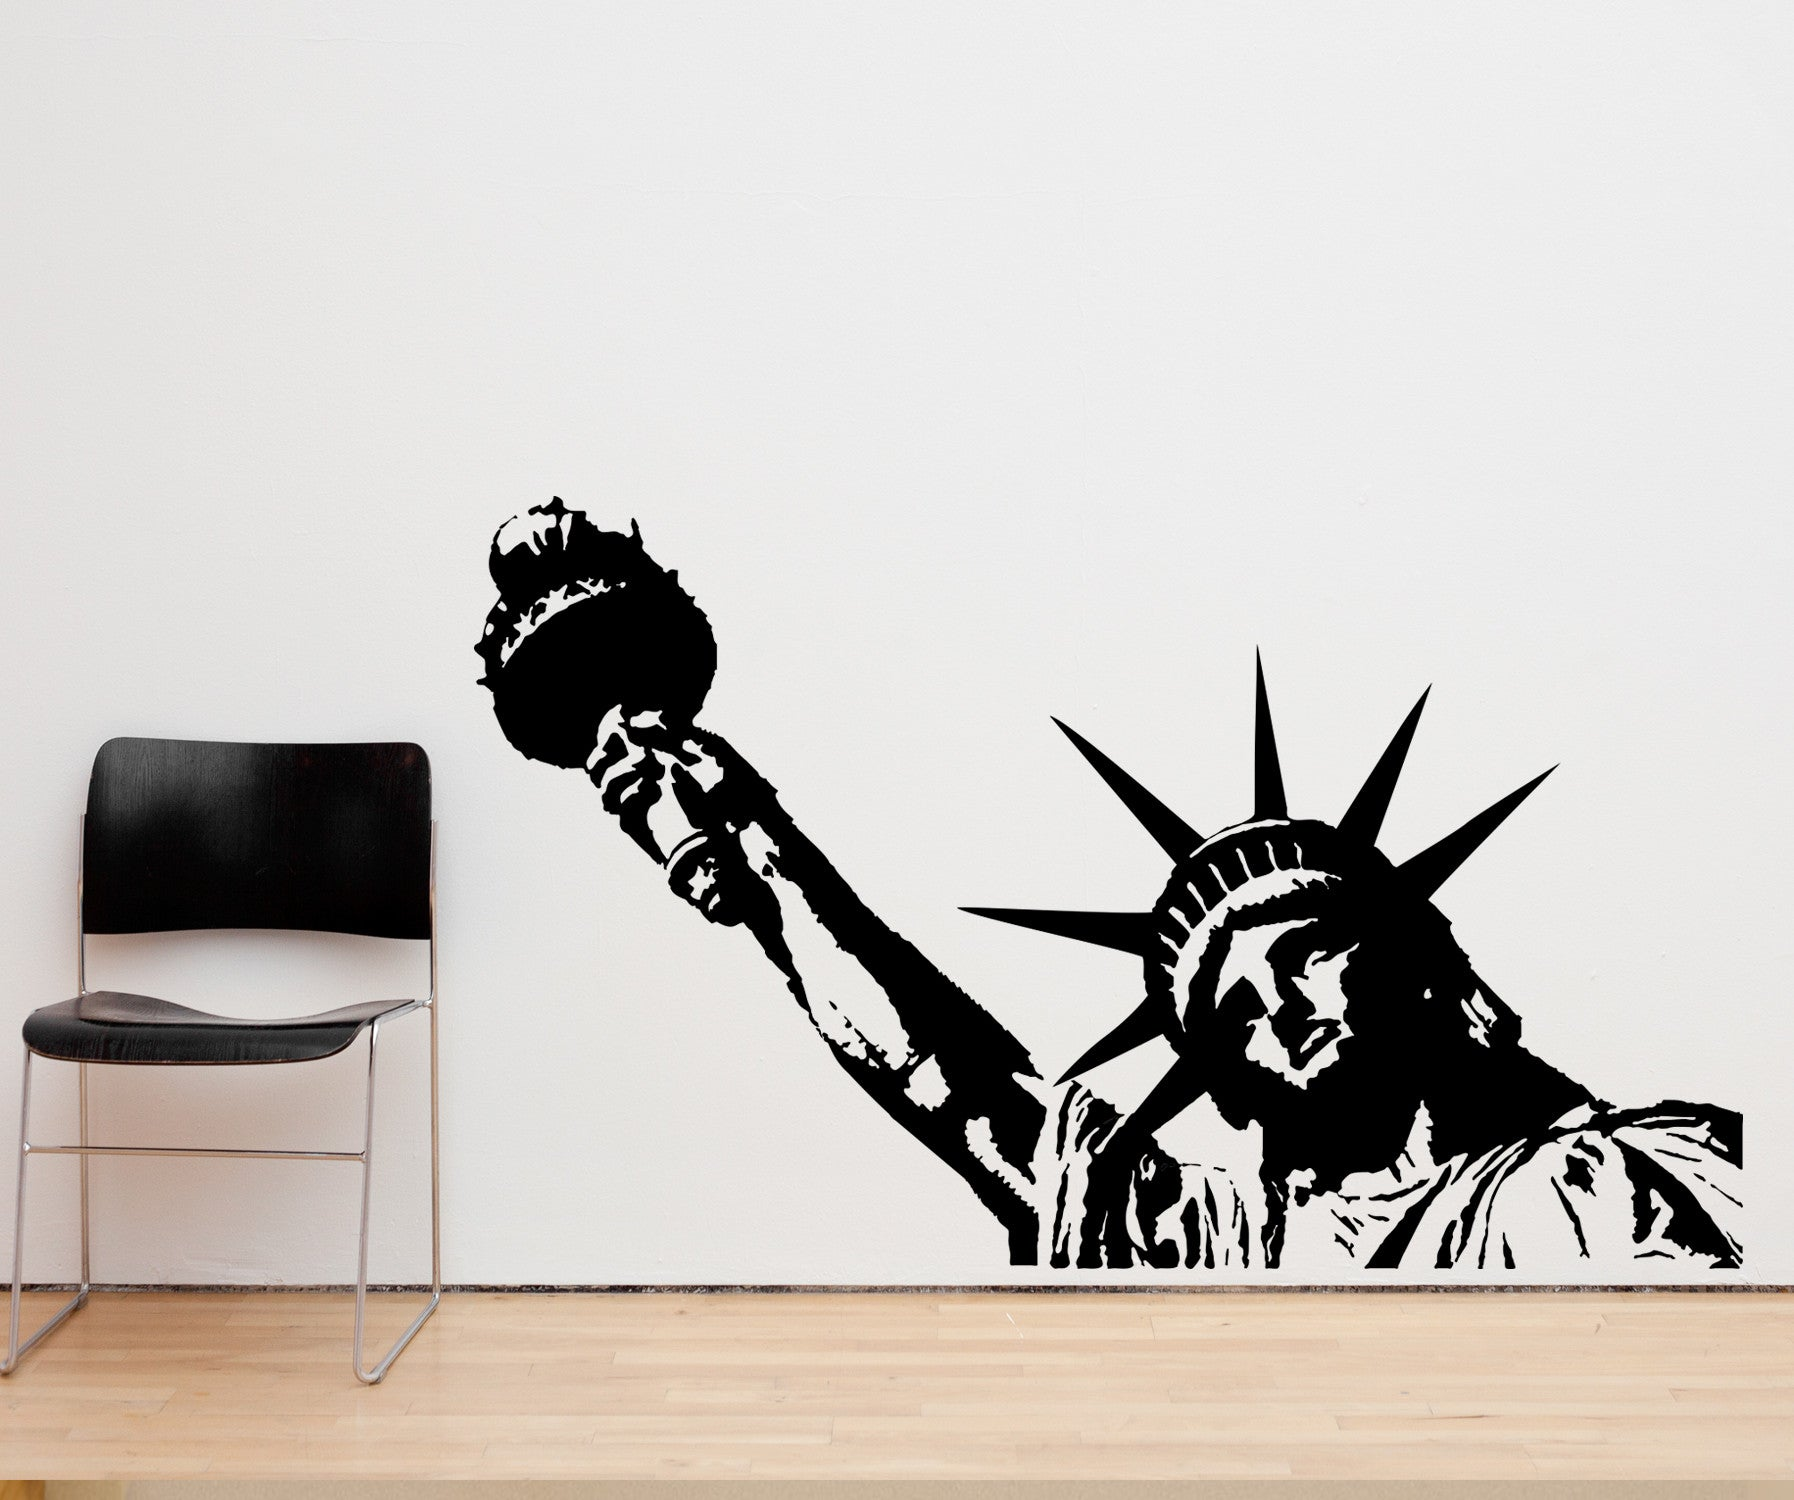 Statue Of Liberty Wall Sticker Big Statue Of Liberty Vinyl Wall Decal Sticker 122